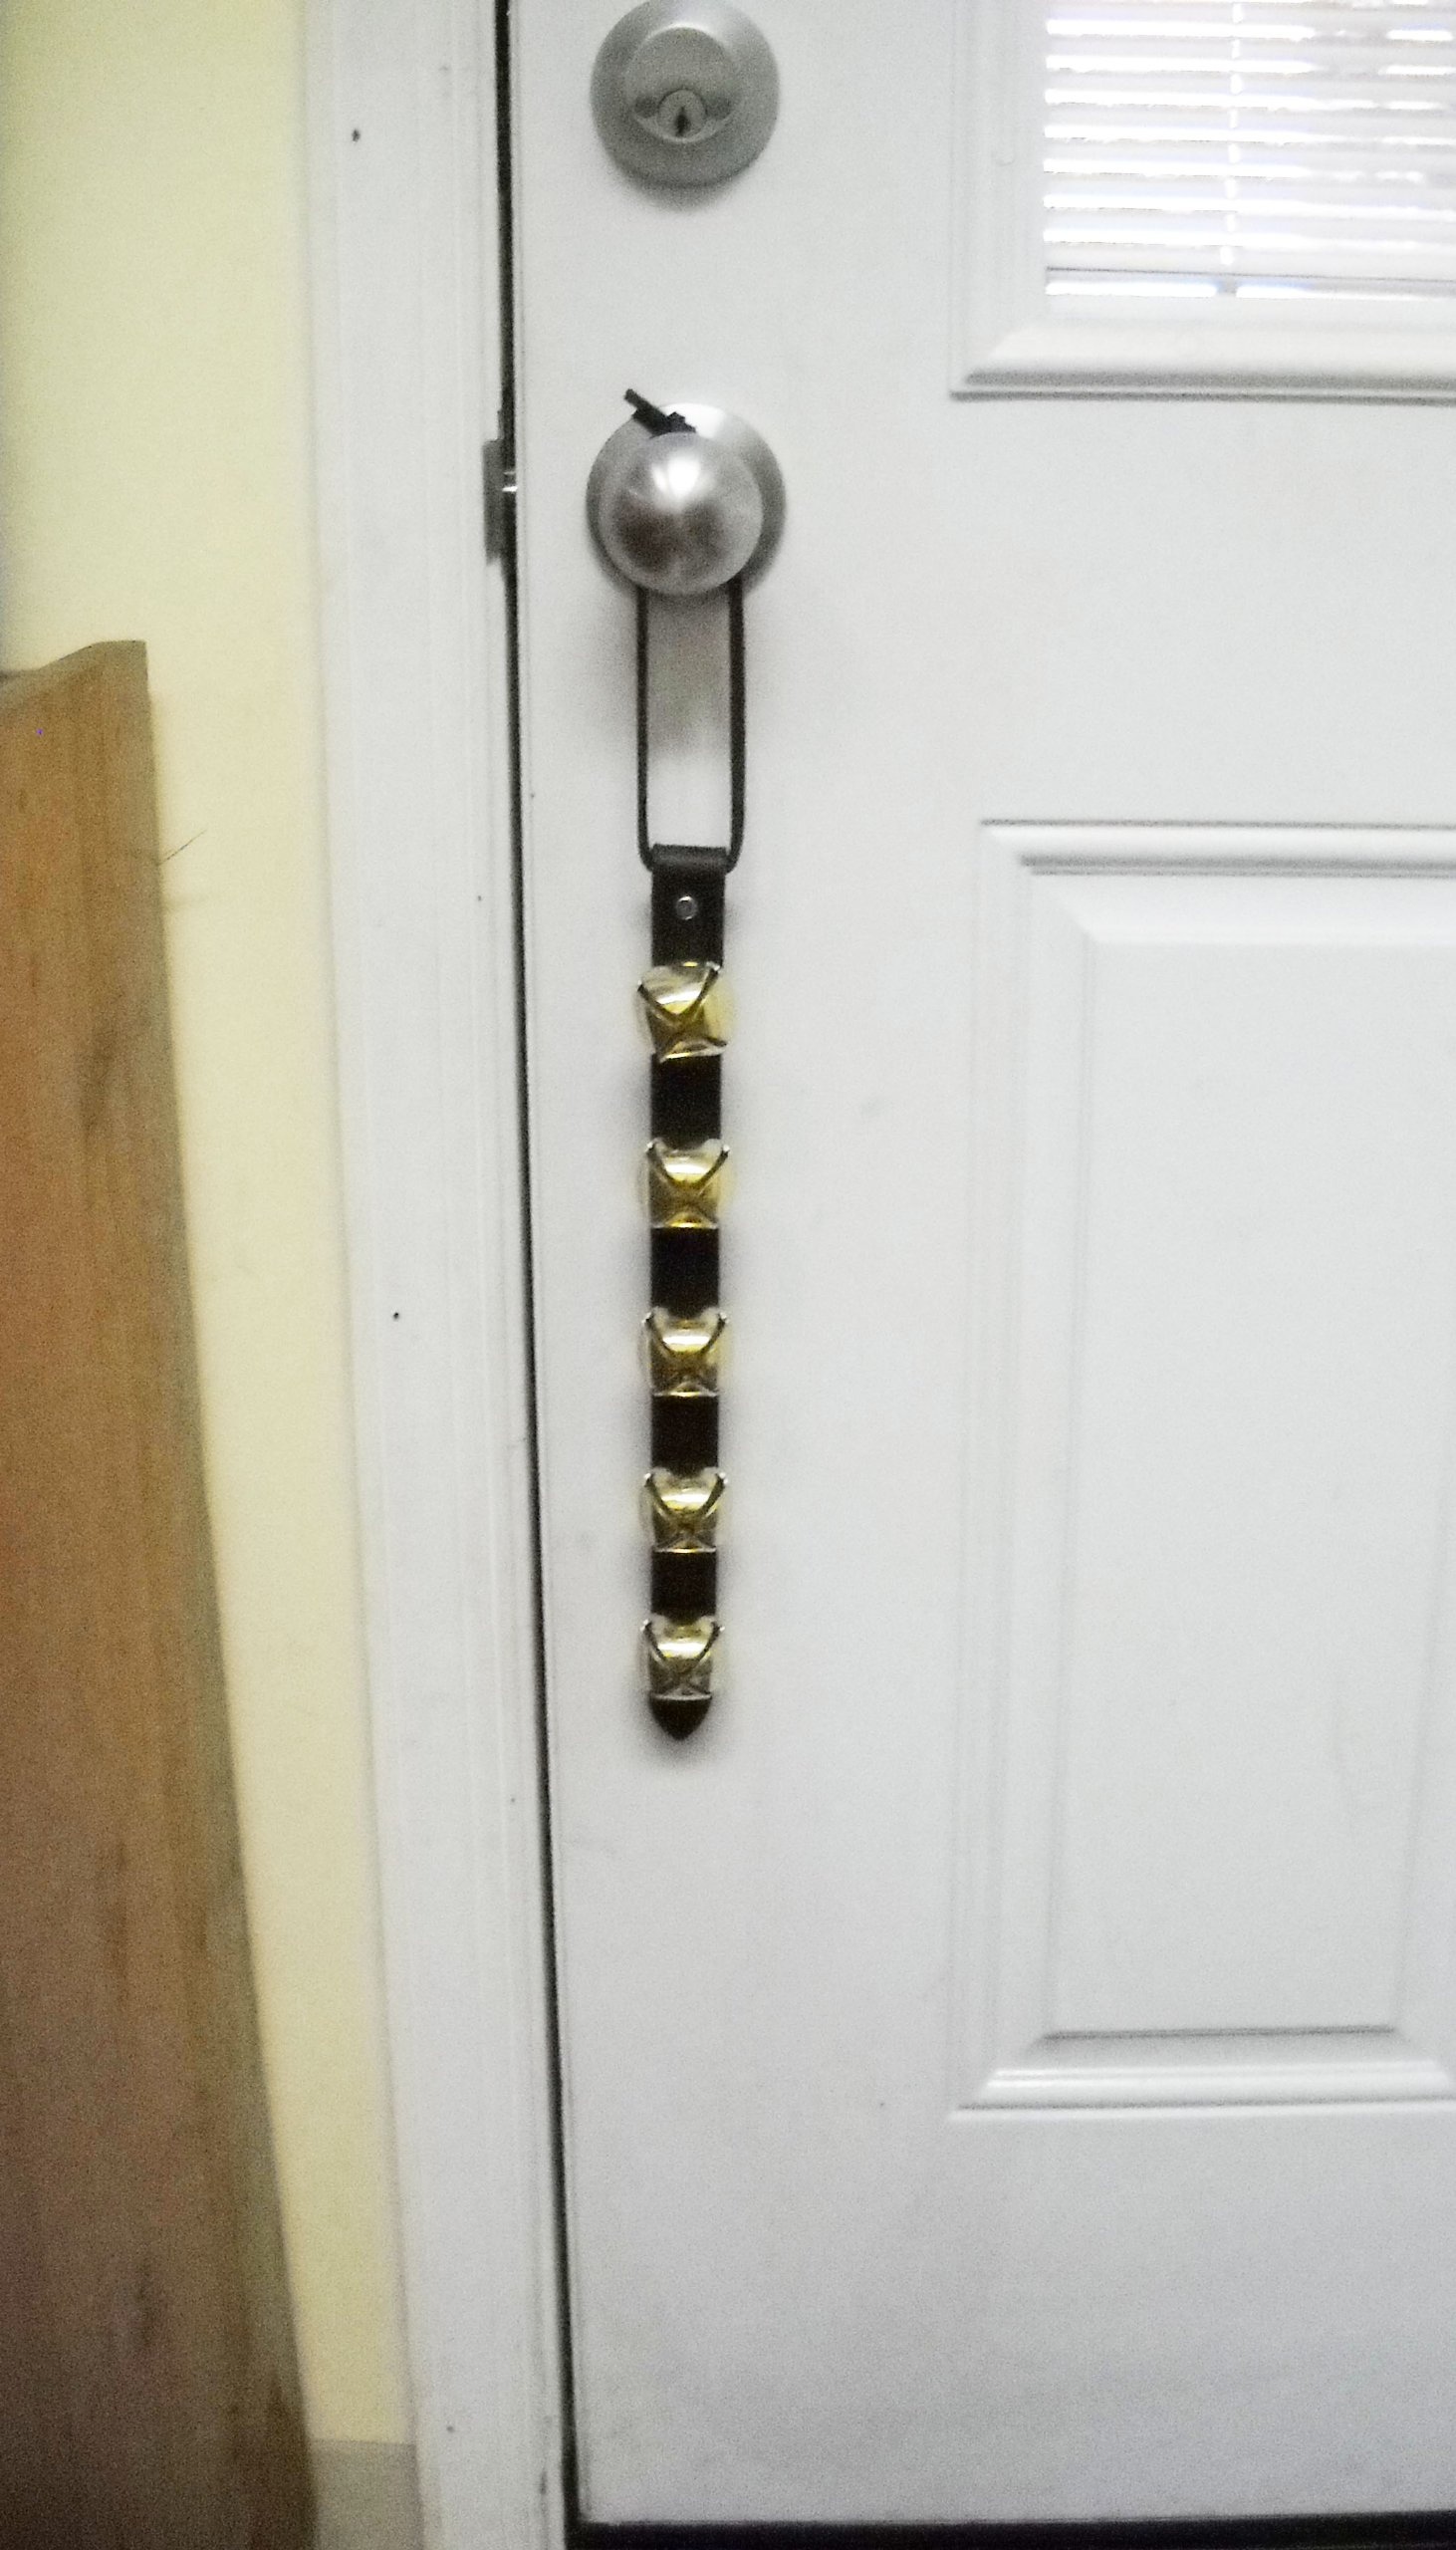 "Warner Arctic Sleigh Bells Leather Strap Decorative Door Bell Hanger 15"" With 5 Brass Plated Jingle"